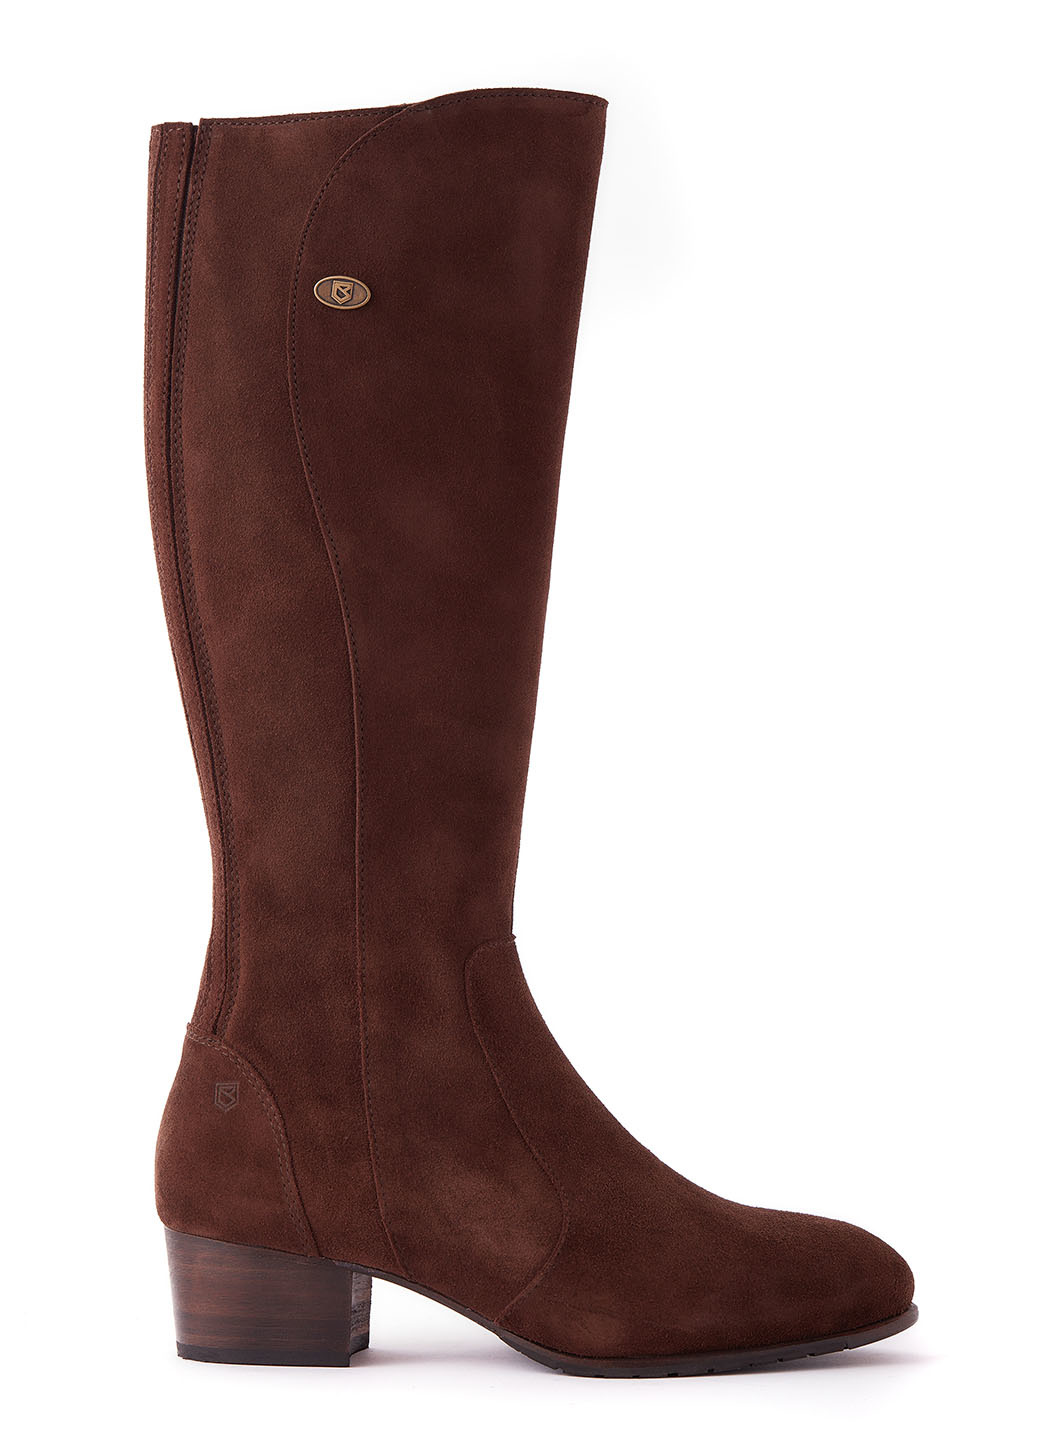 Dubarry Downpatrick Kniehoge Laars - Cigar-3